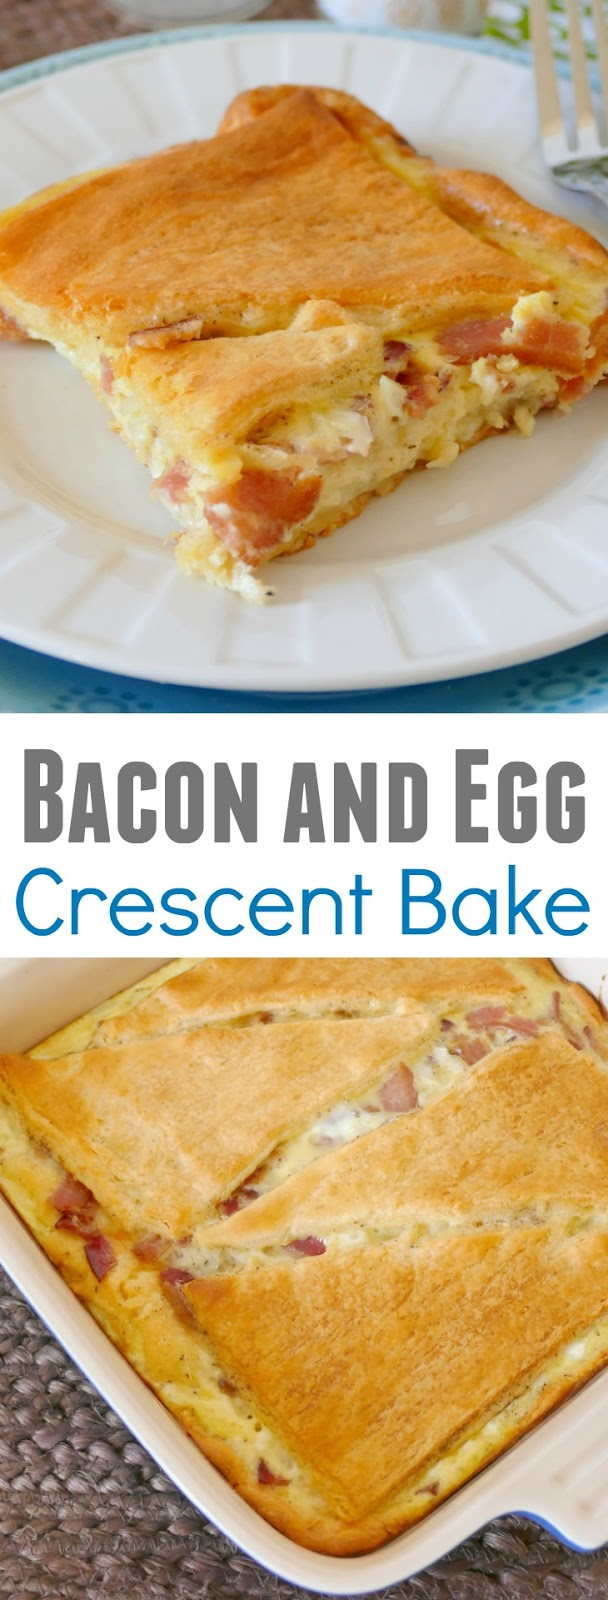 This easy breakfast bake is fast, delicious and great for any occasion, including holidays, breakfast, brunch or dinner! The whole family will love it and you can use sausage instead of bacon, bell pepper instead of onion or cheddar instead of pepper jack cheese!